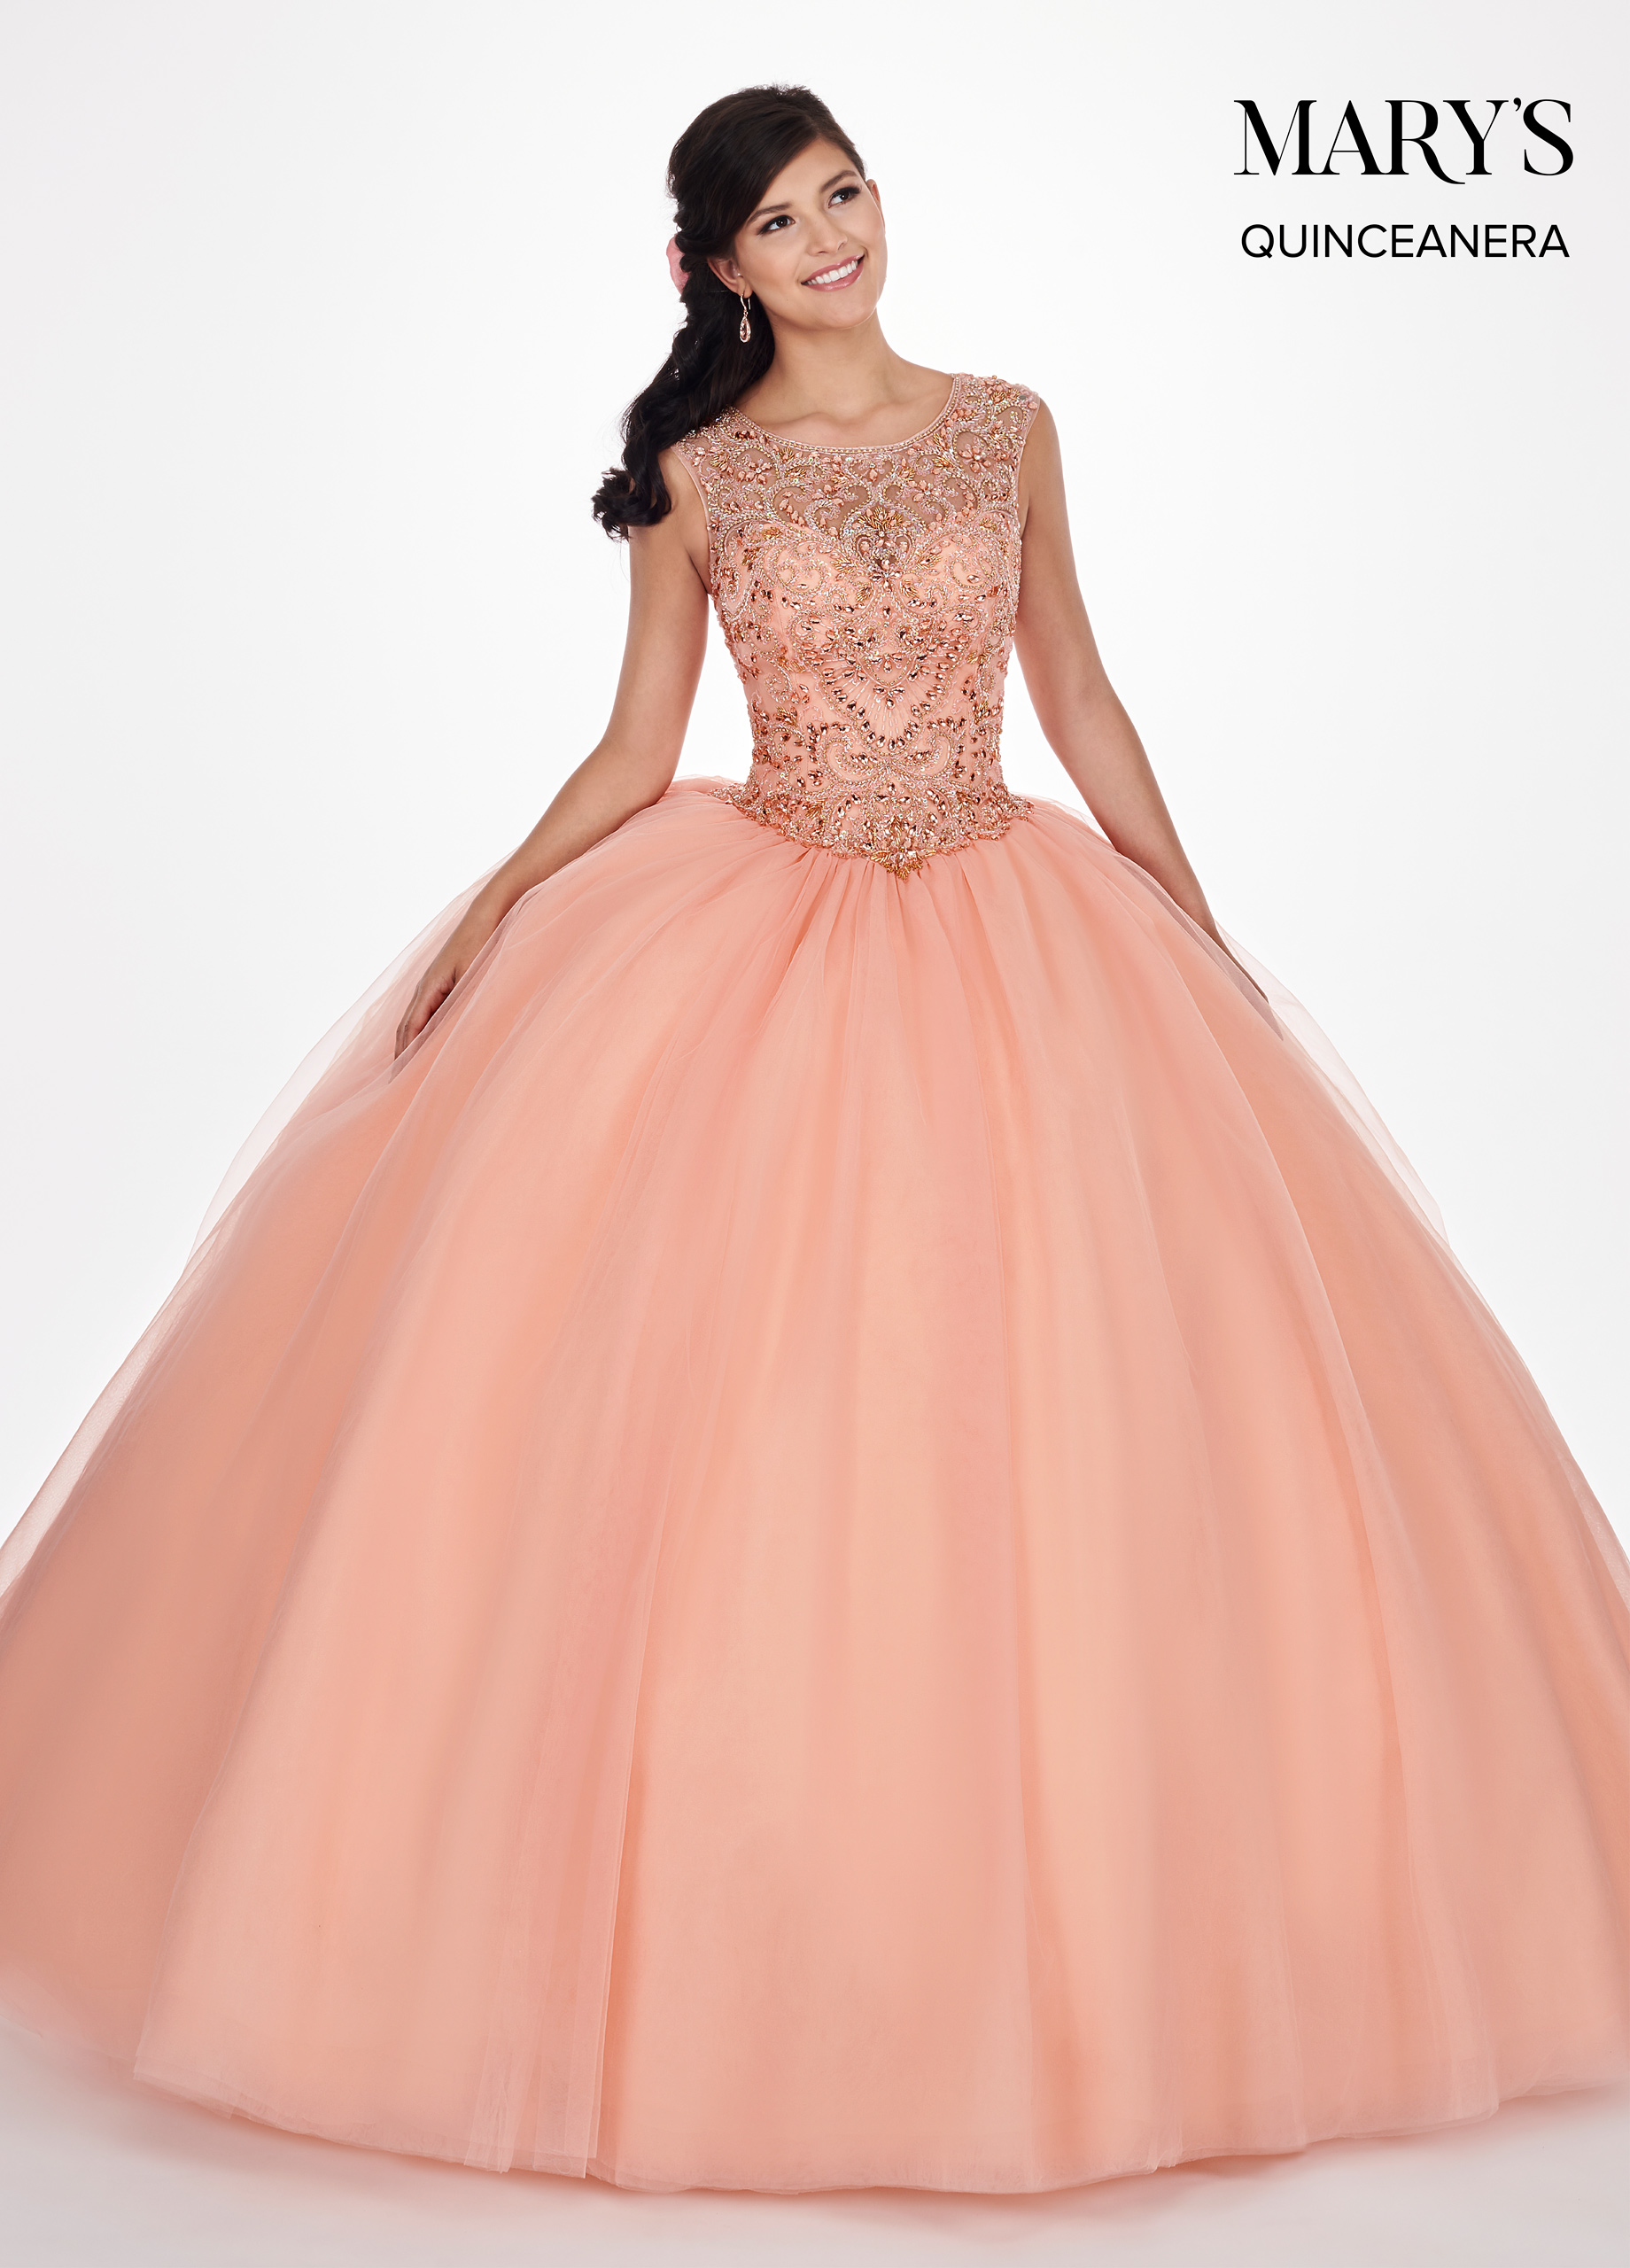 Marys Quinceanera Dresses Style Mq1041 In Peach Or